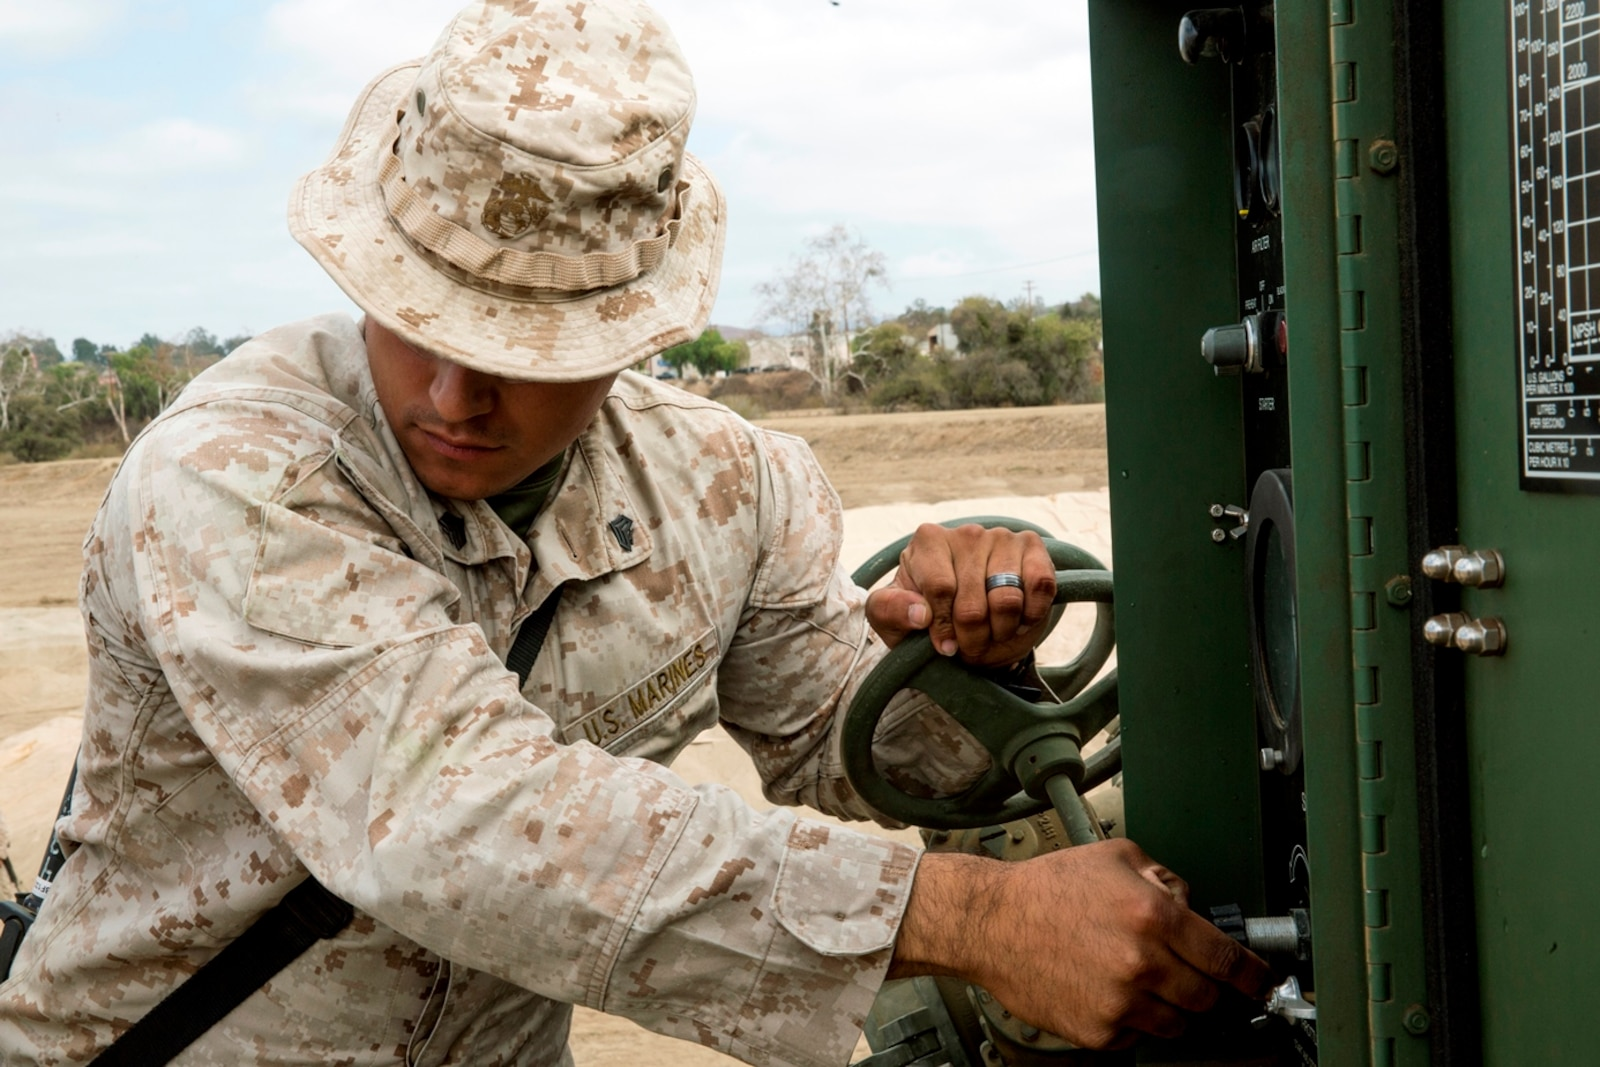 U.S. Marine Corps Sgt. Oscar Tapia, from Salinas, Calif., a bulk fuel specialist with Bulk Fuel Company, 7th Engineer Support Battalion, controls the water pressure of a 600-gallon-per-minute pump while it flows through a 6-inch hose reel system into one of the 50,000 gallon bags at the storage site during the bulk fuel Marine Corps Combat Readiness Evaluation on Camp Pendleton, Calif., Oct. 12, 2016. There are three 200,000 gallon storage sites totaling 600,000 gallons in the MCCRE as well as two 120,000 gallon sites.